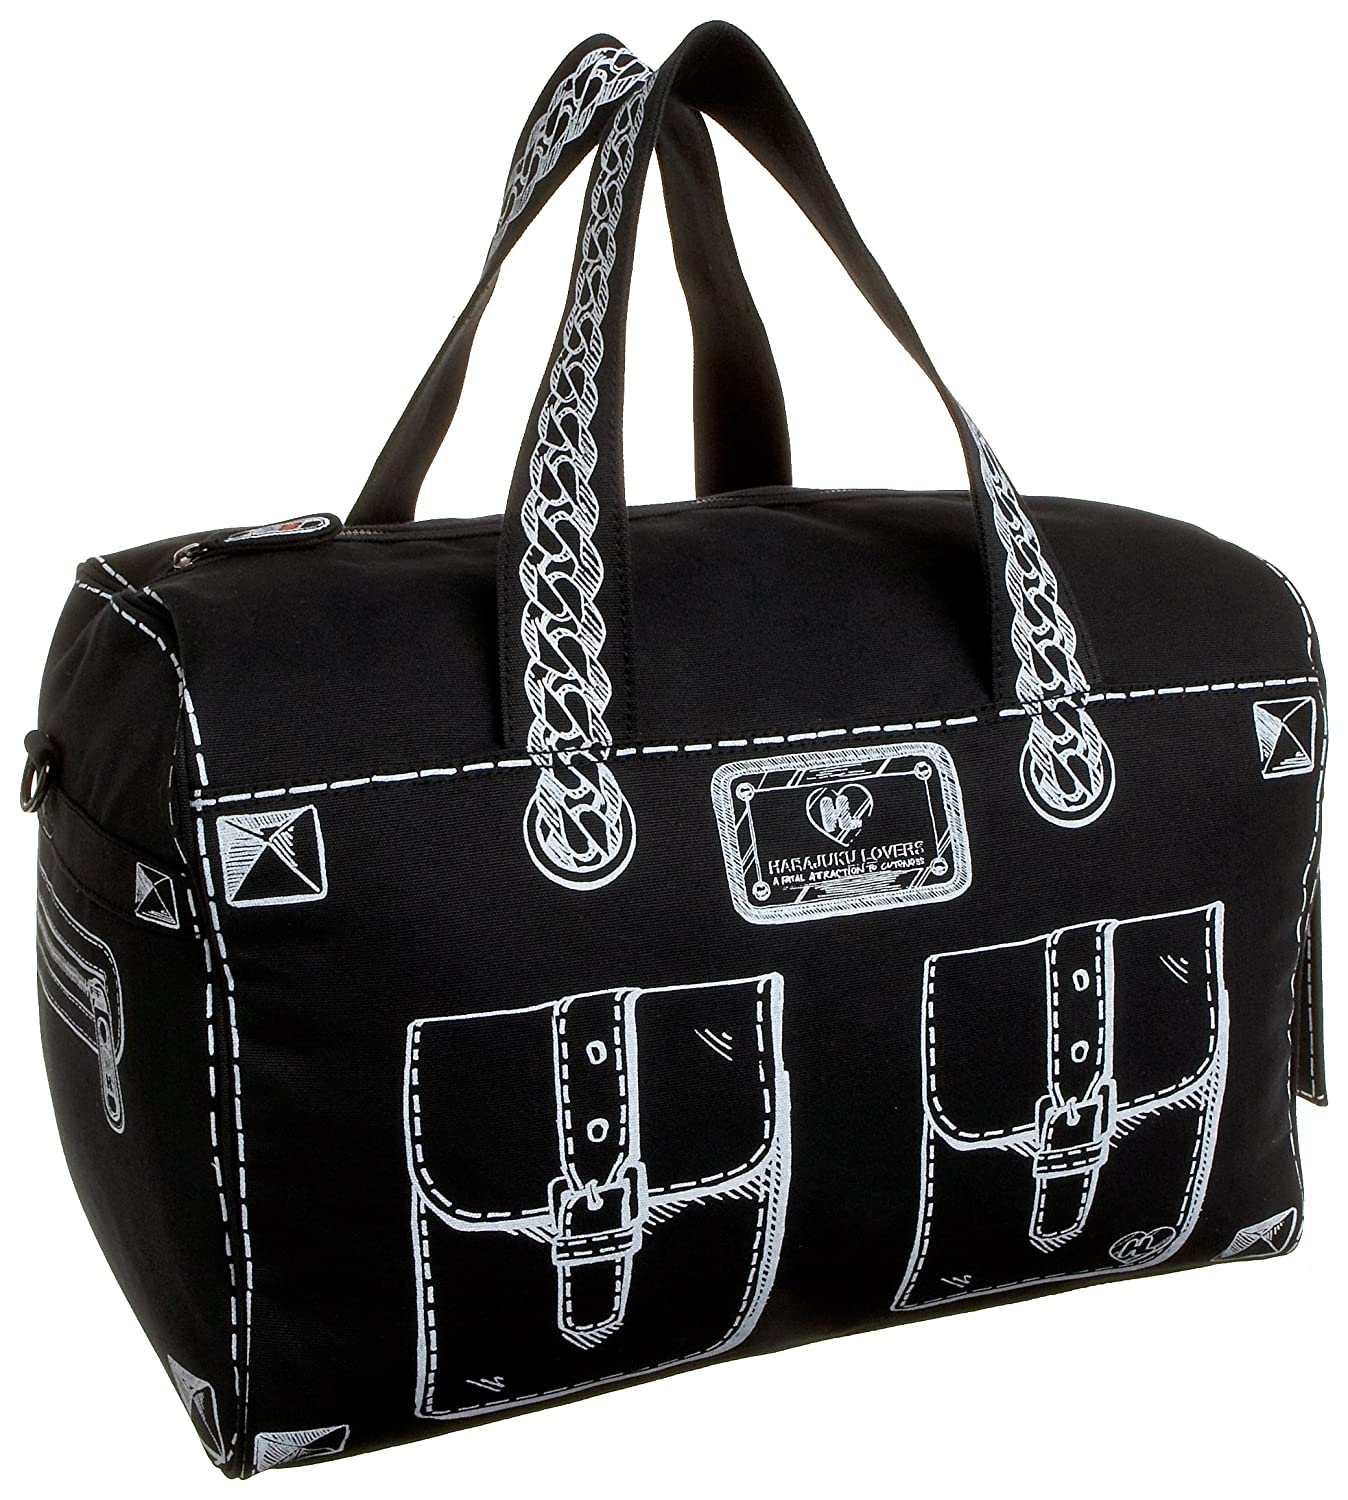 Harajuku Lovers Trompe L'oiel Trouble Satchel - Free Overnight Shipping & Return Shipping: Endless.com